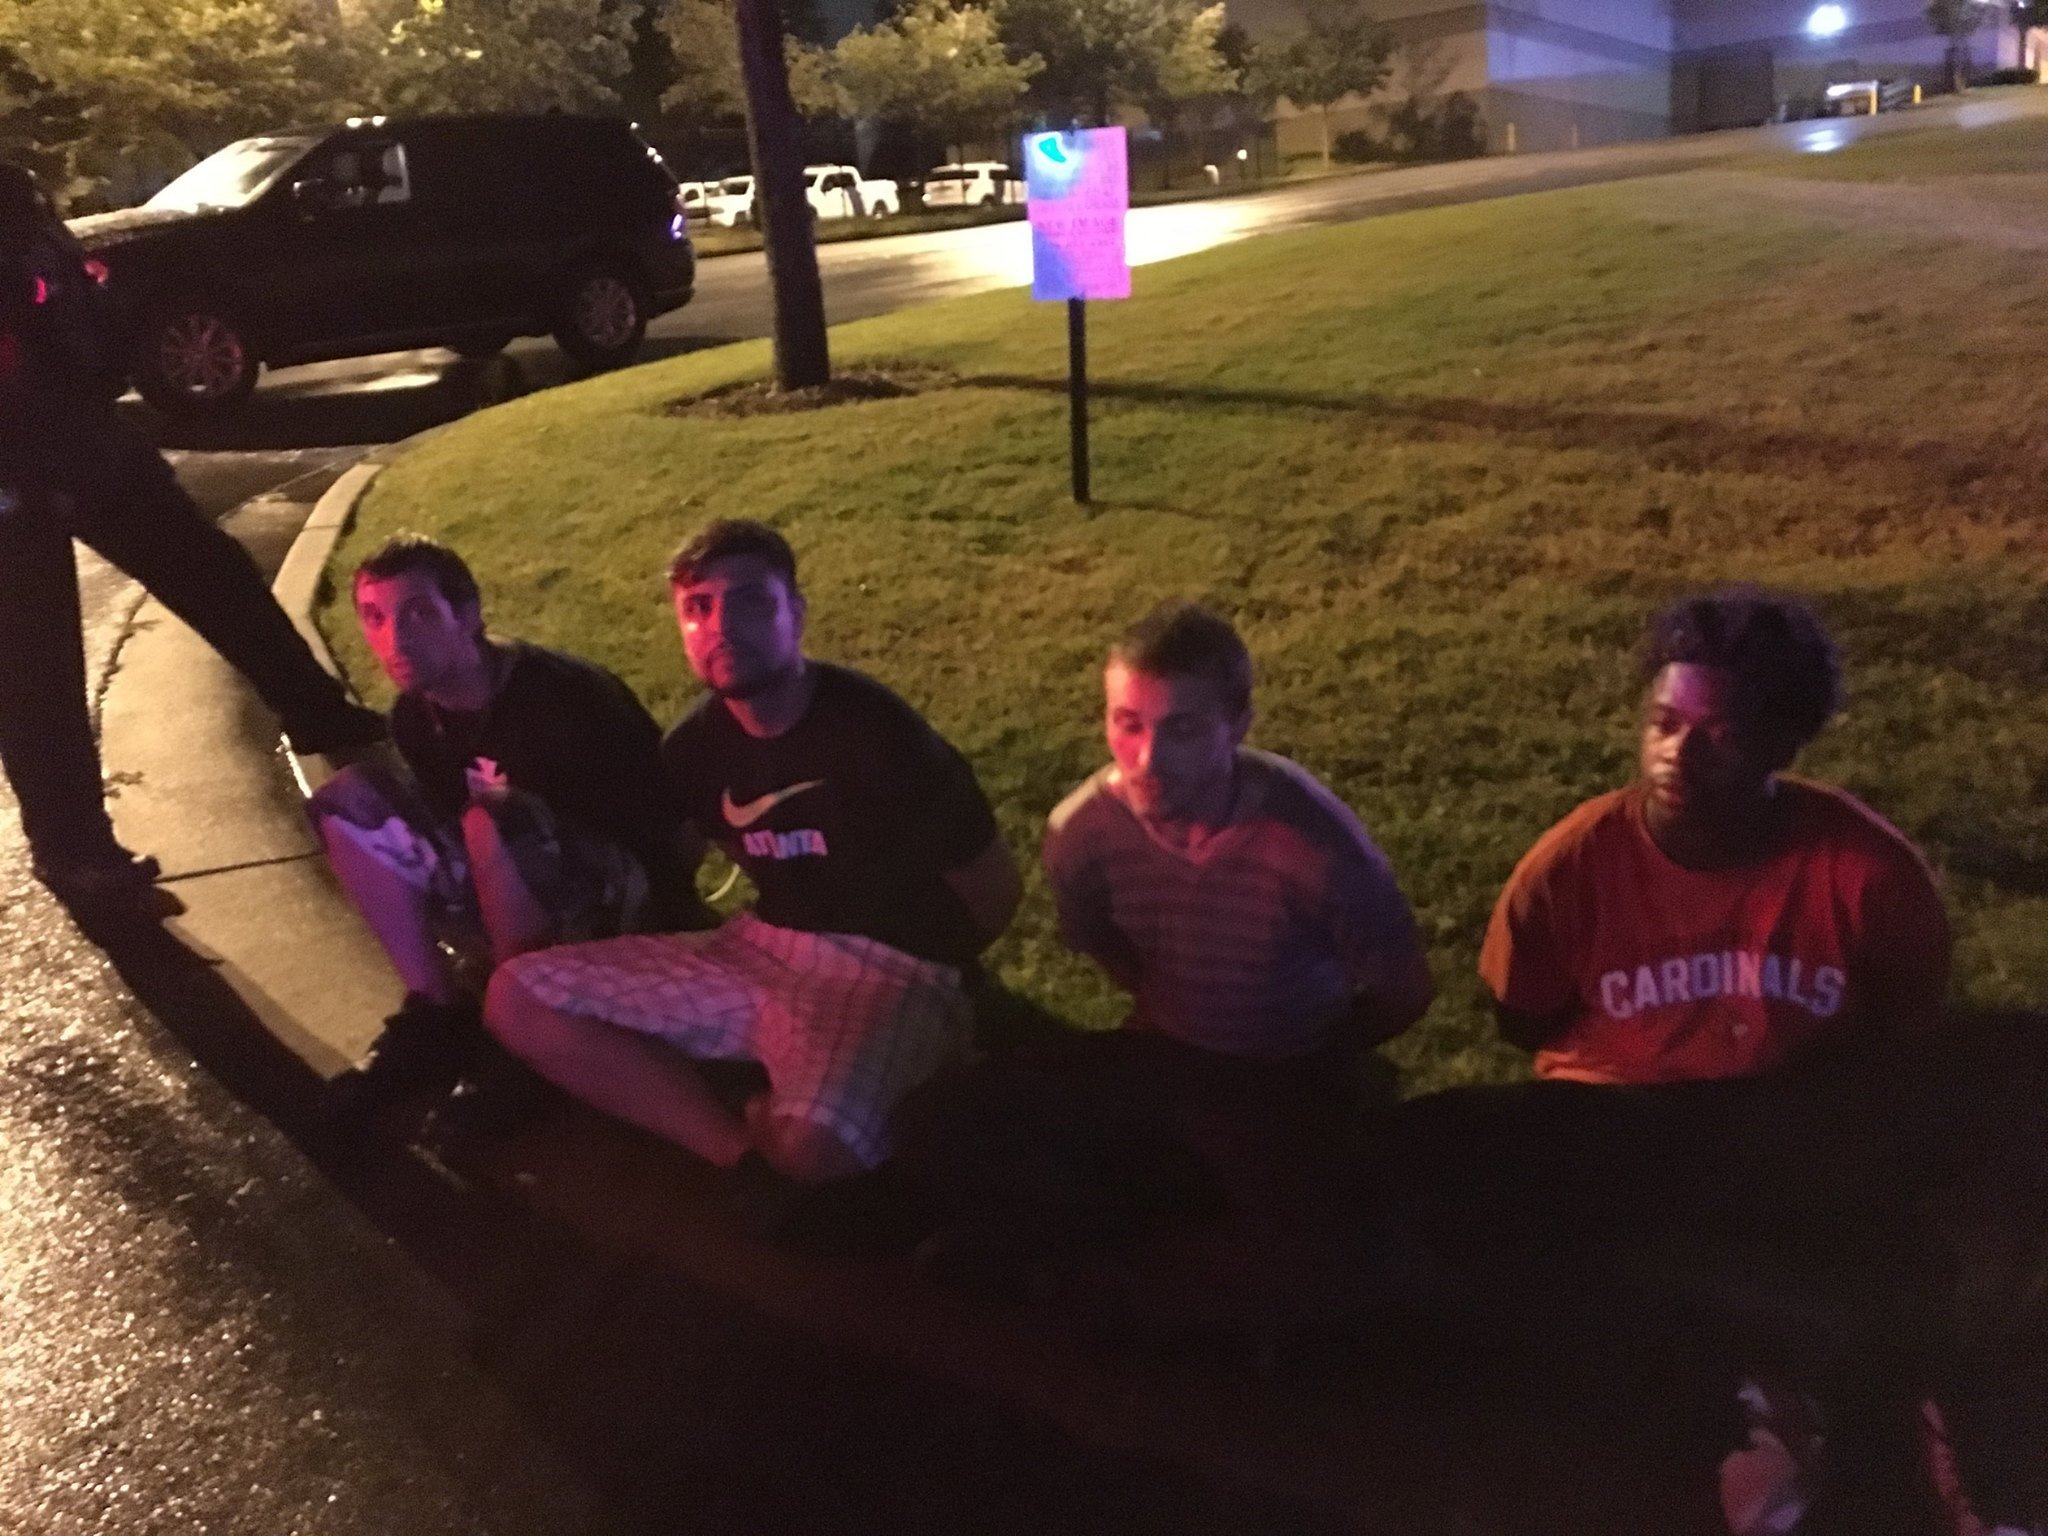 Suspects in handcuffs on a curb. (Source: Clayton County Police Dept.)